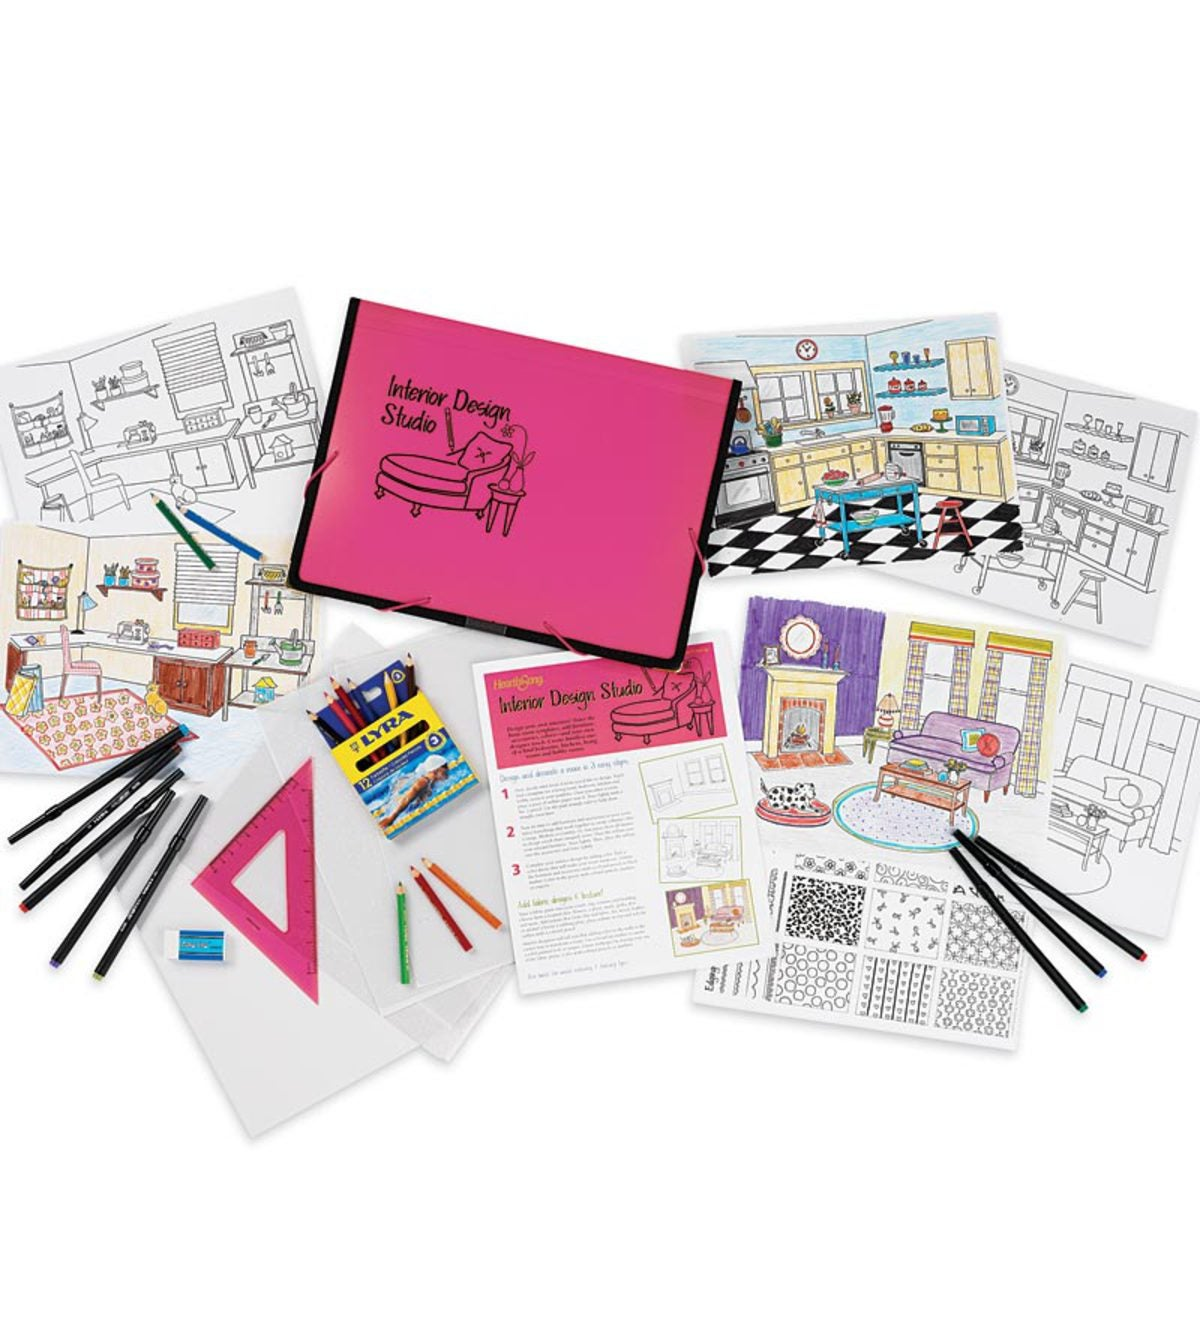 Interior Design Studio Kit with Add-On Kits Special